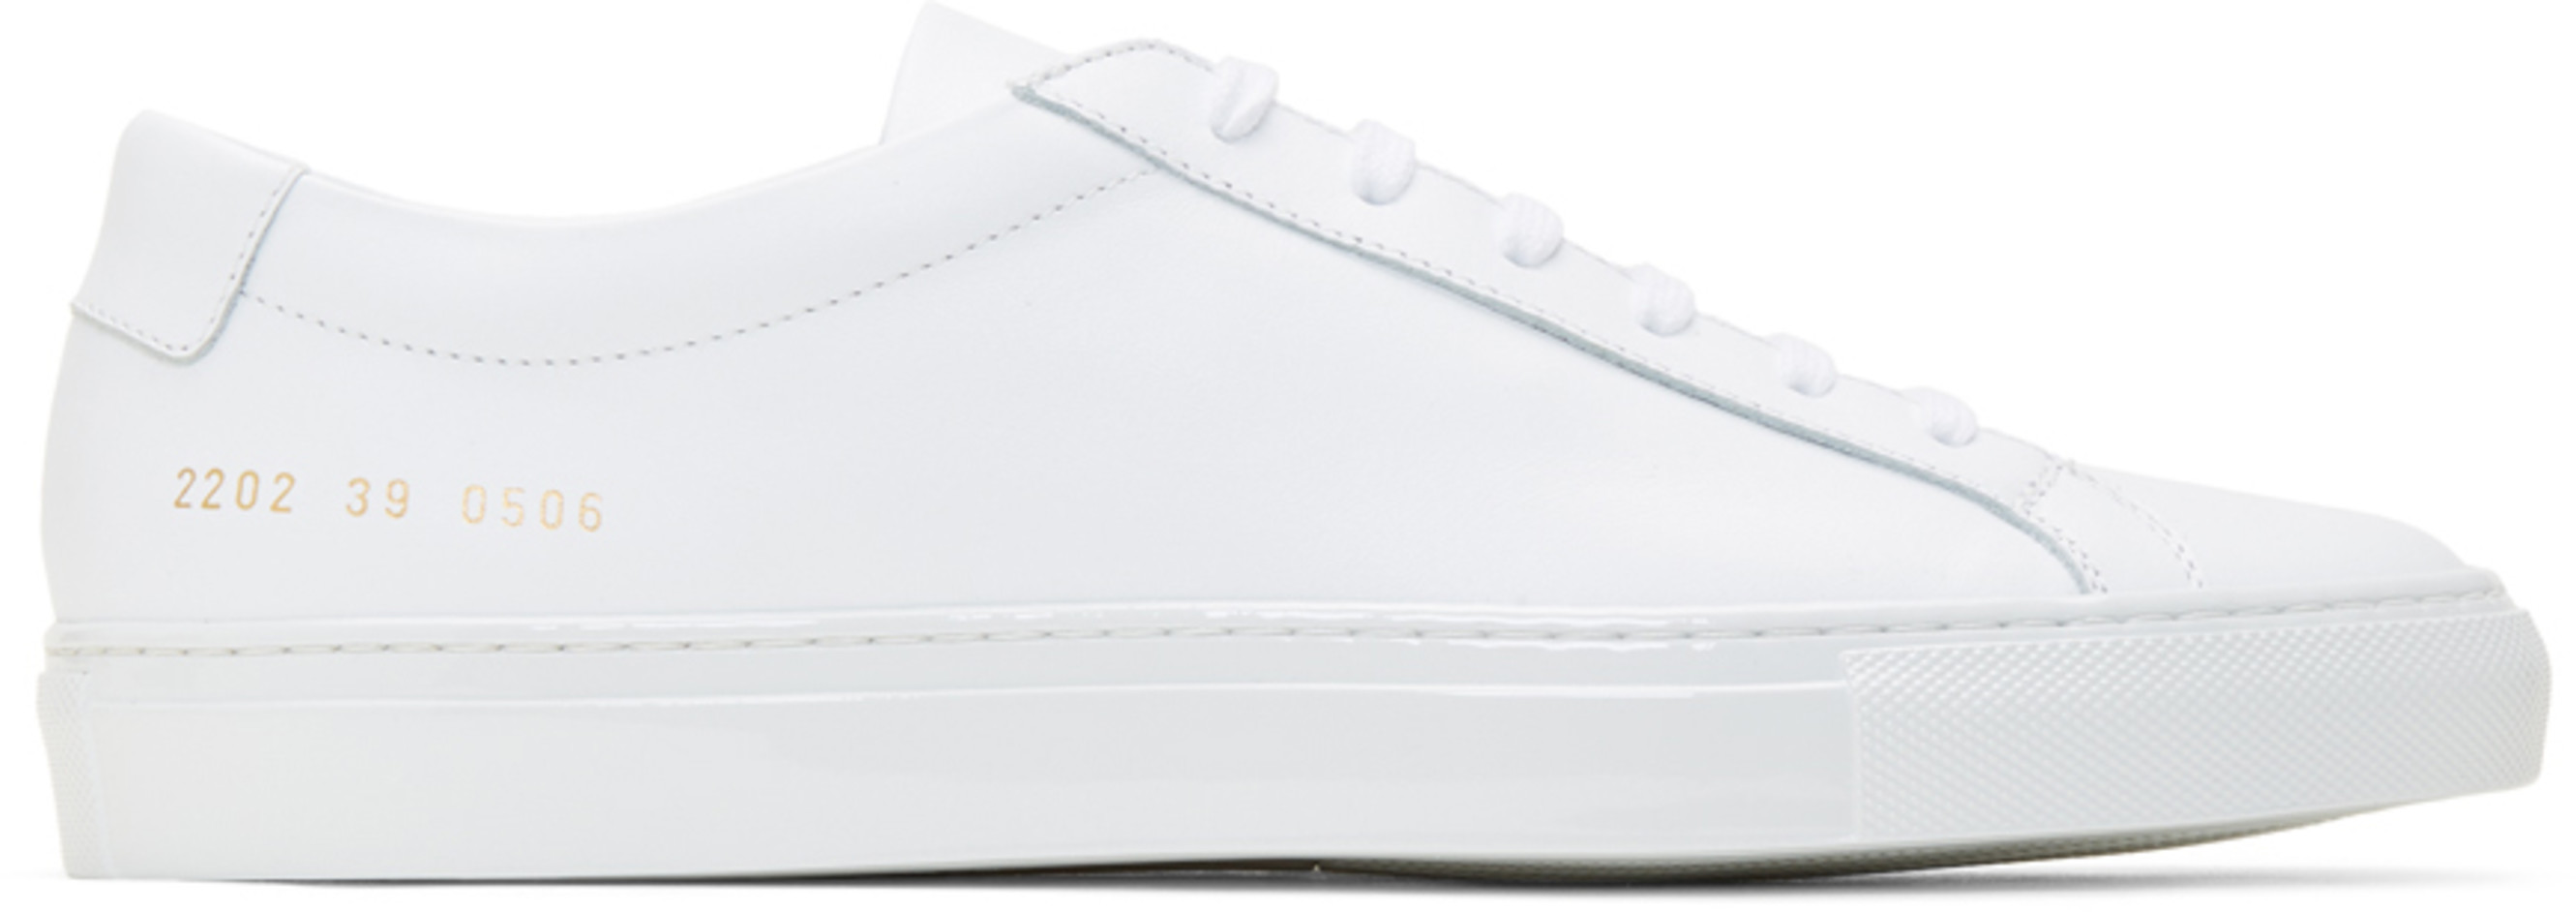 83a2a3407a32 Common Projects for Men SS19 Collection